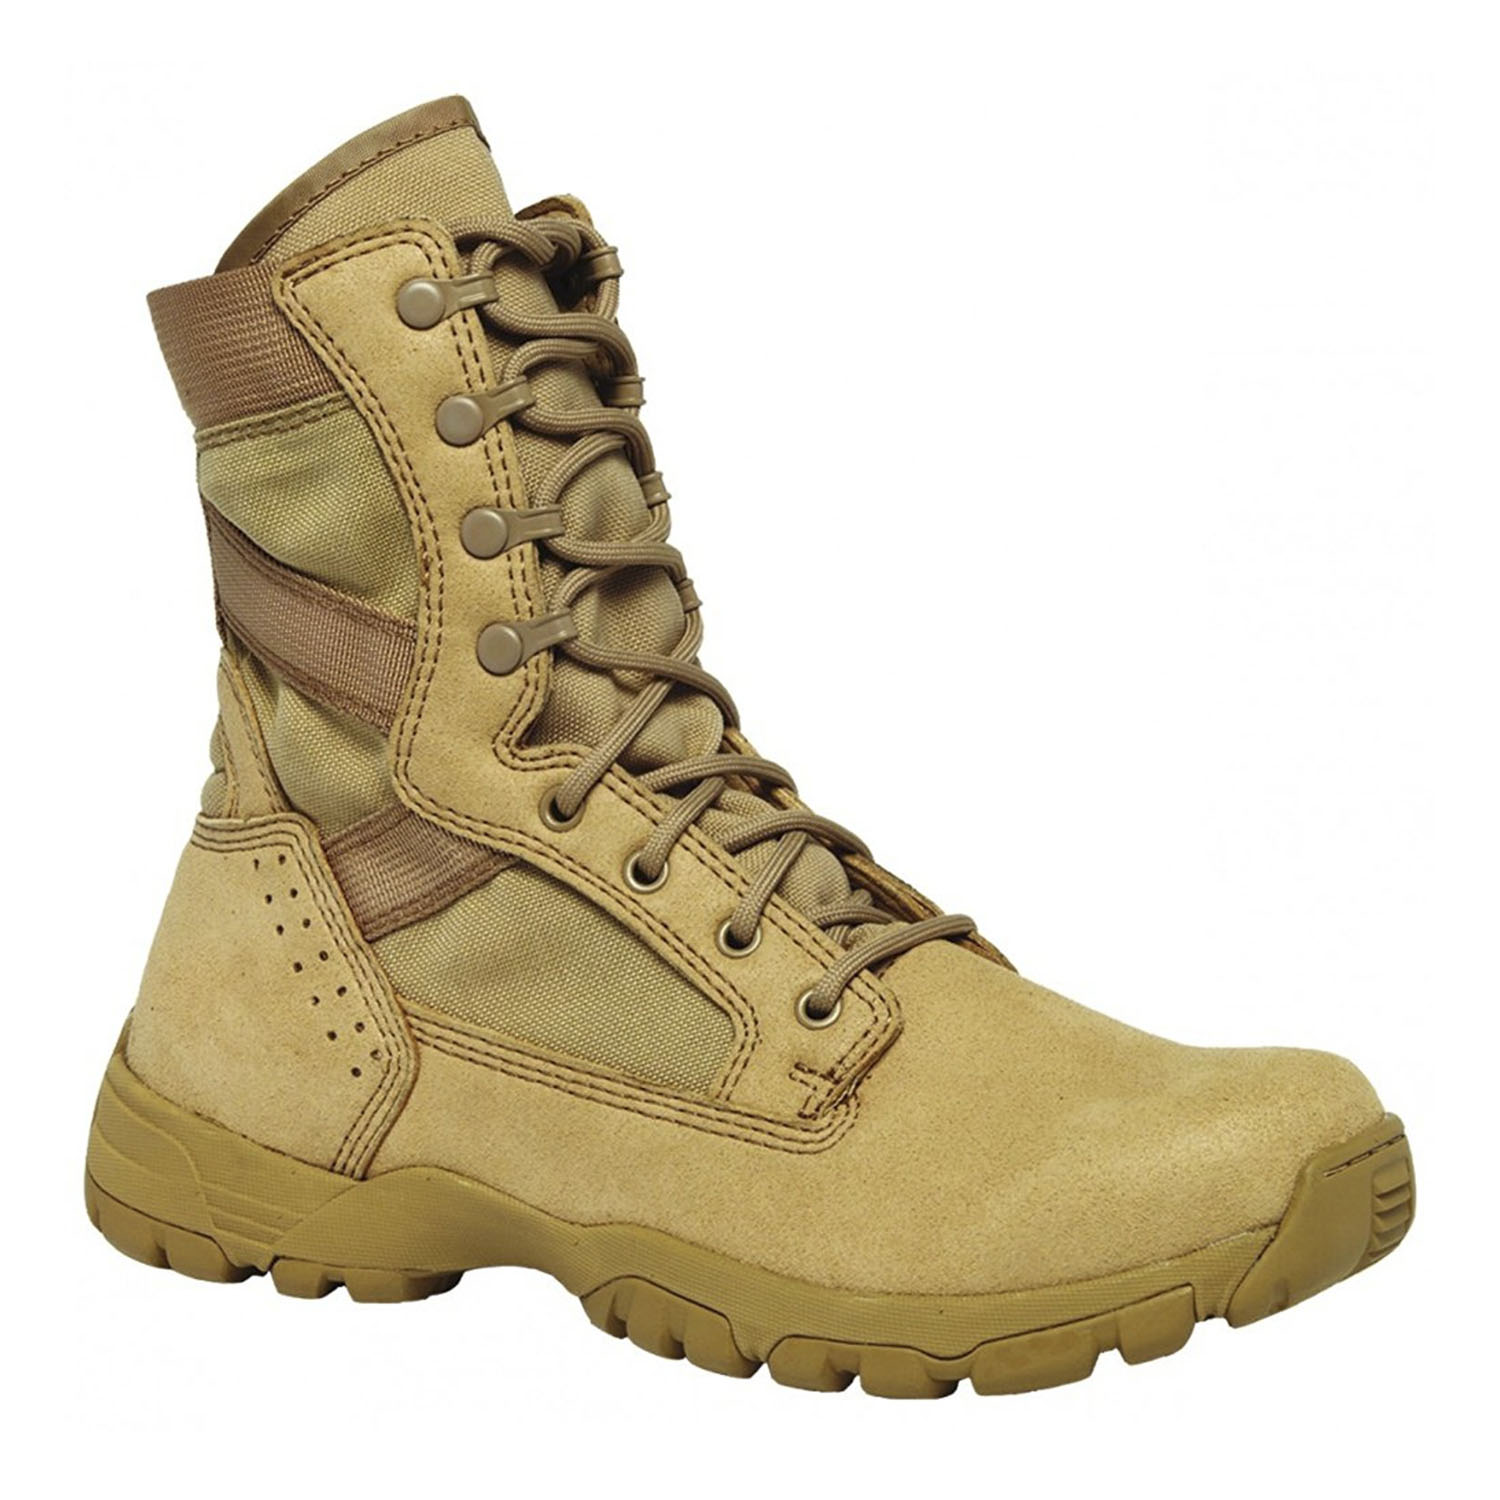 Belleville Tactical Research Flyweight ll Army Boot